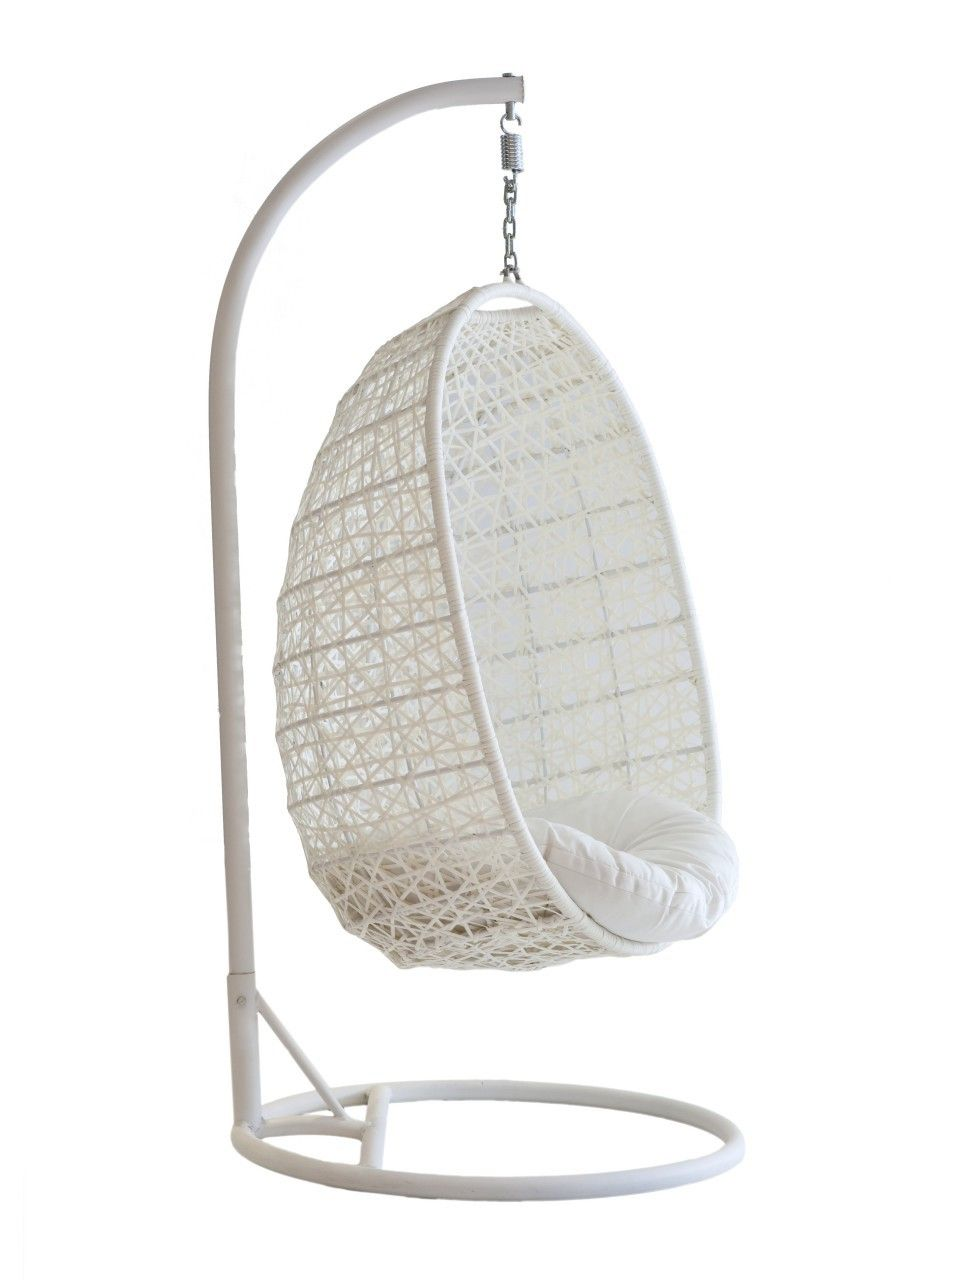 Cool hanging chairs for indoor and outdoor charming white viva